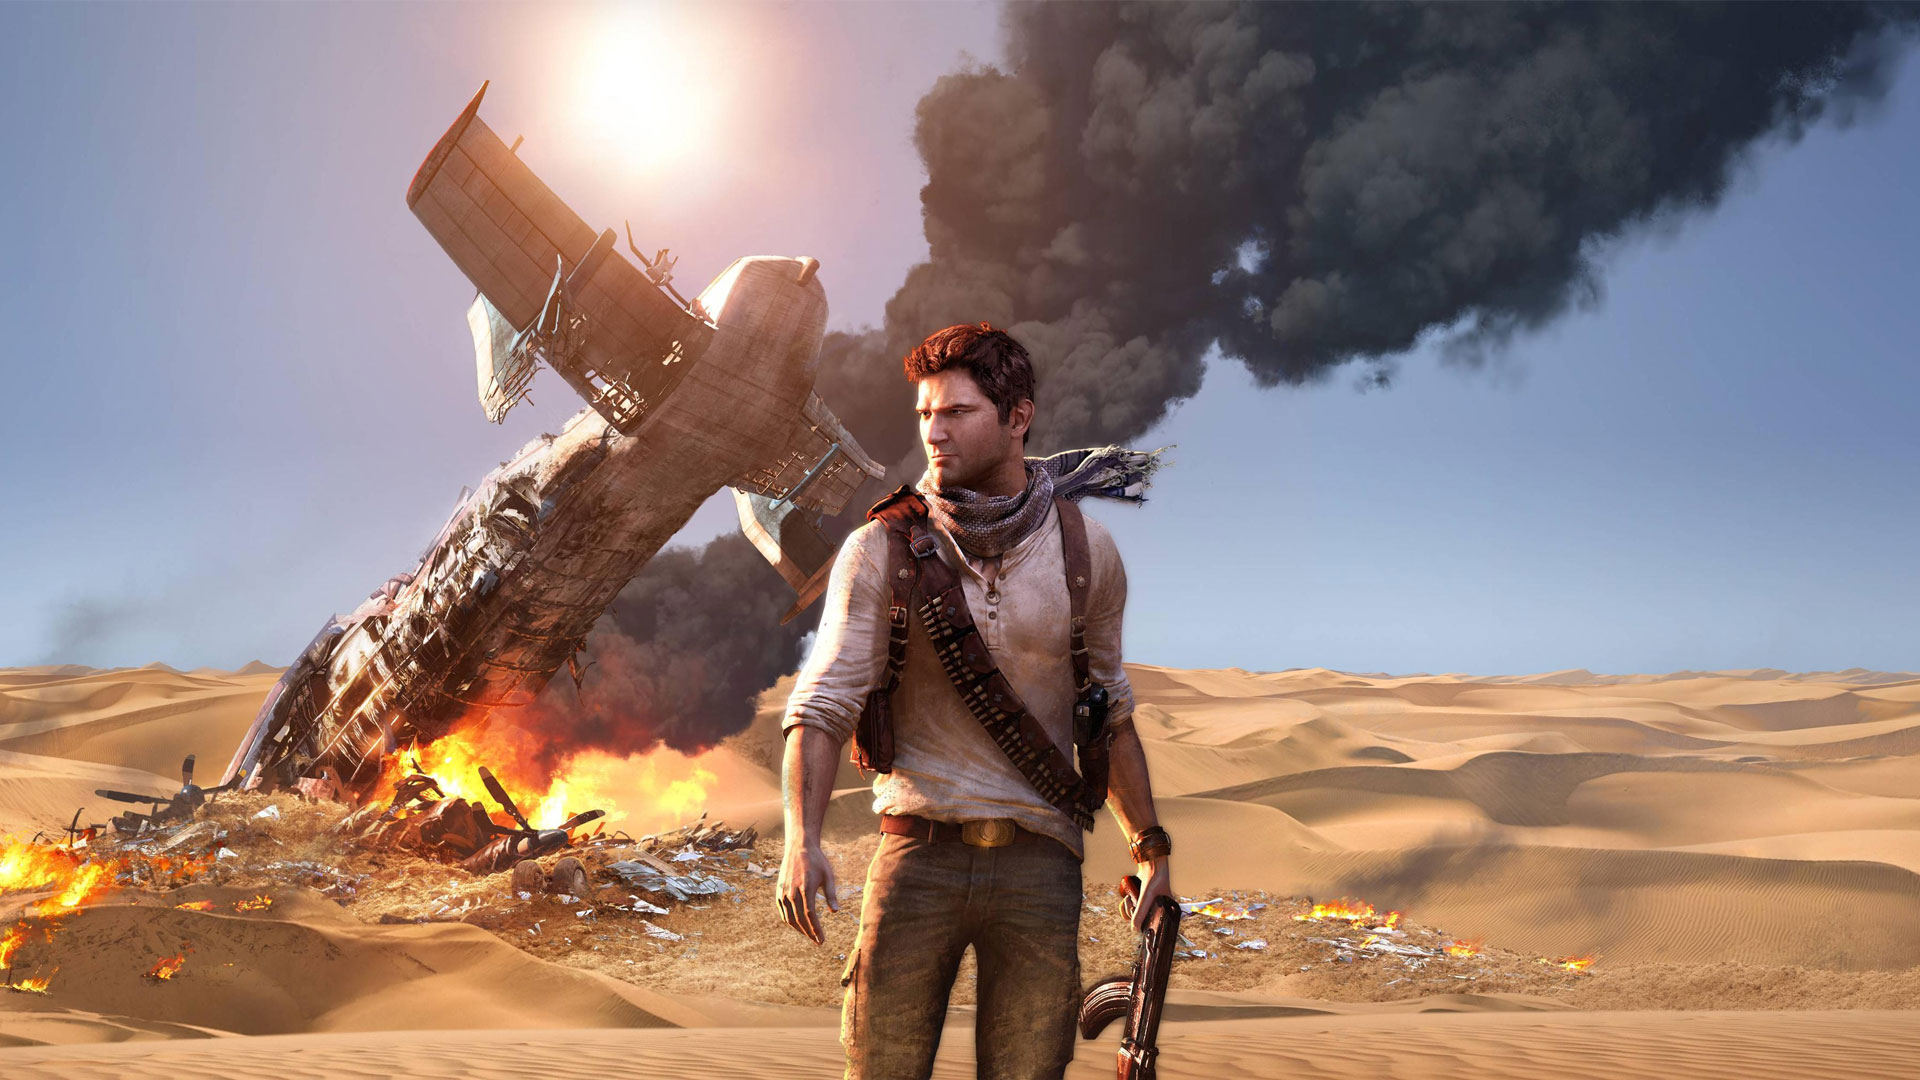 uncharted wallpapers images 1920x1080 1920x1080